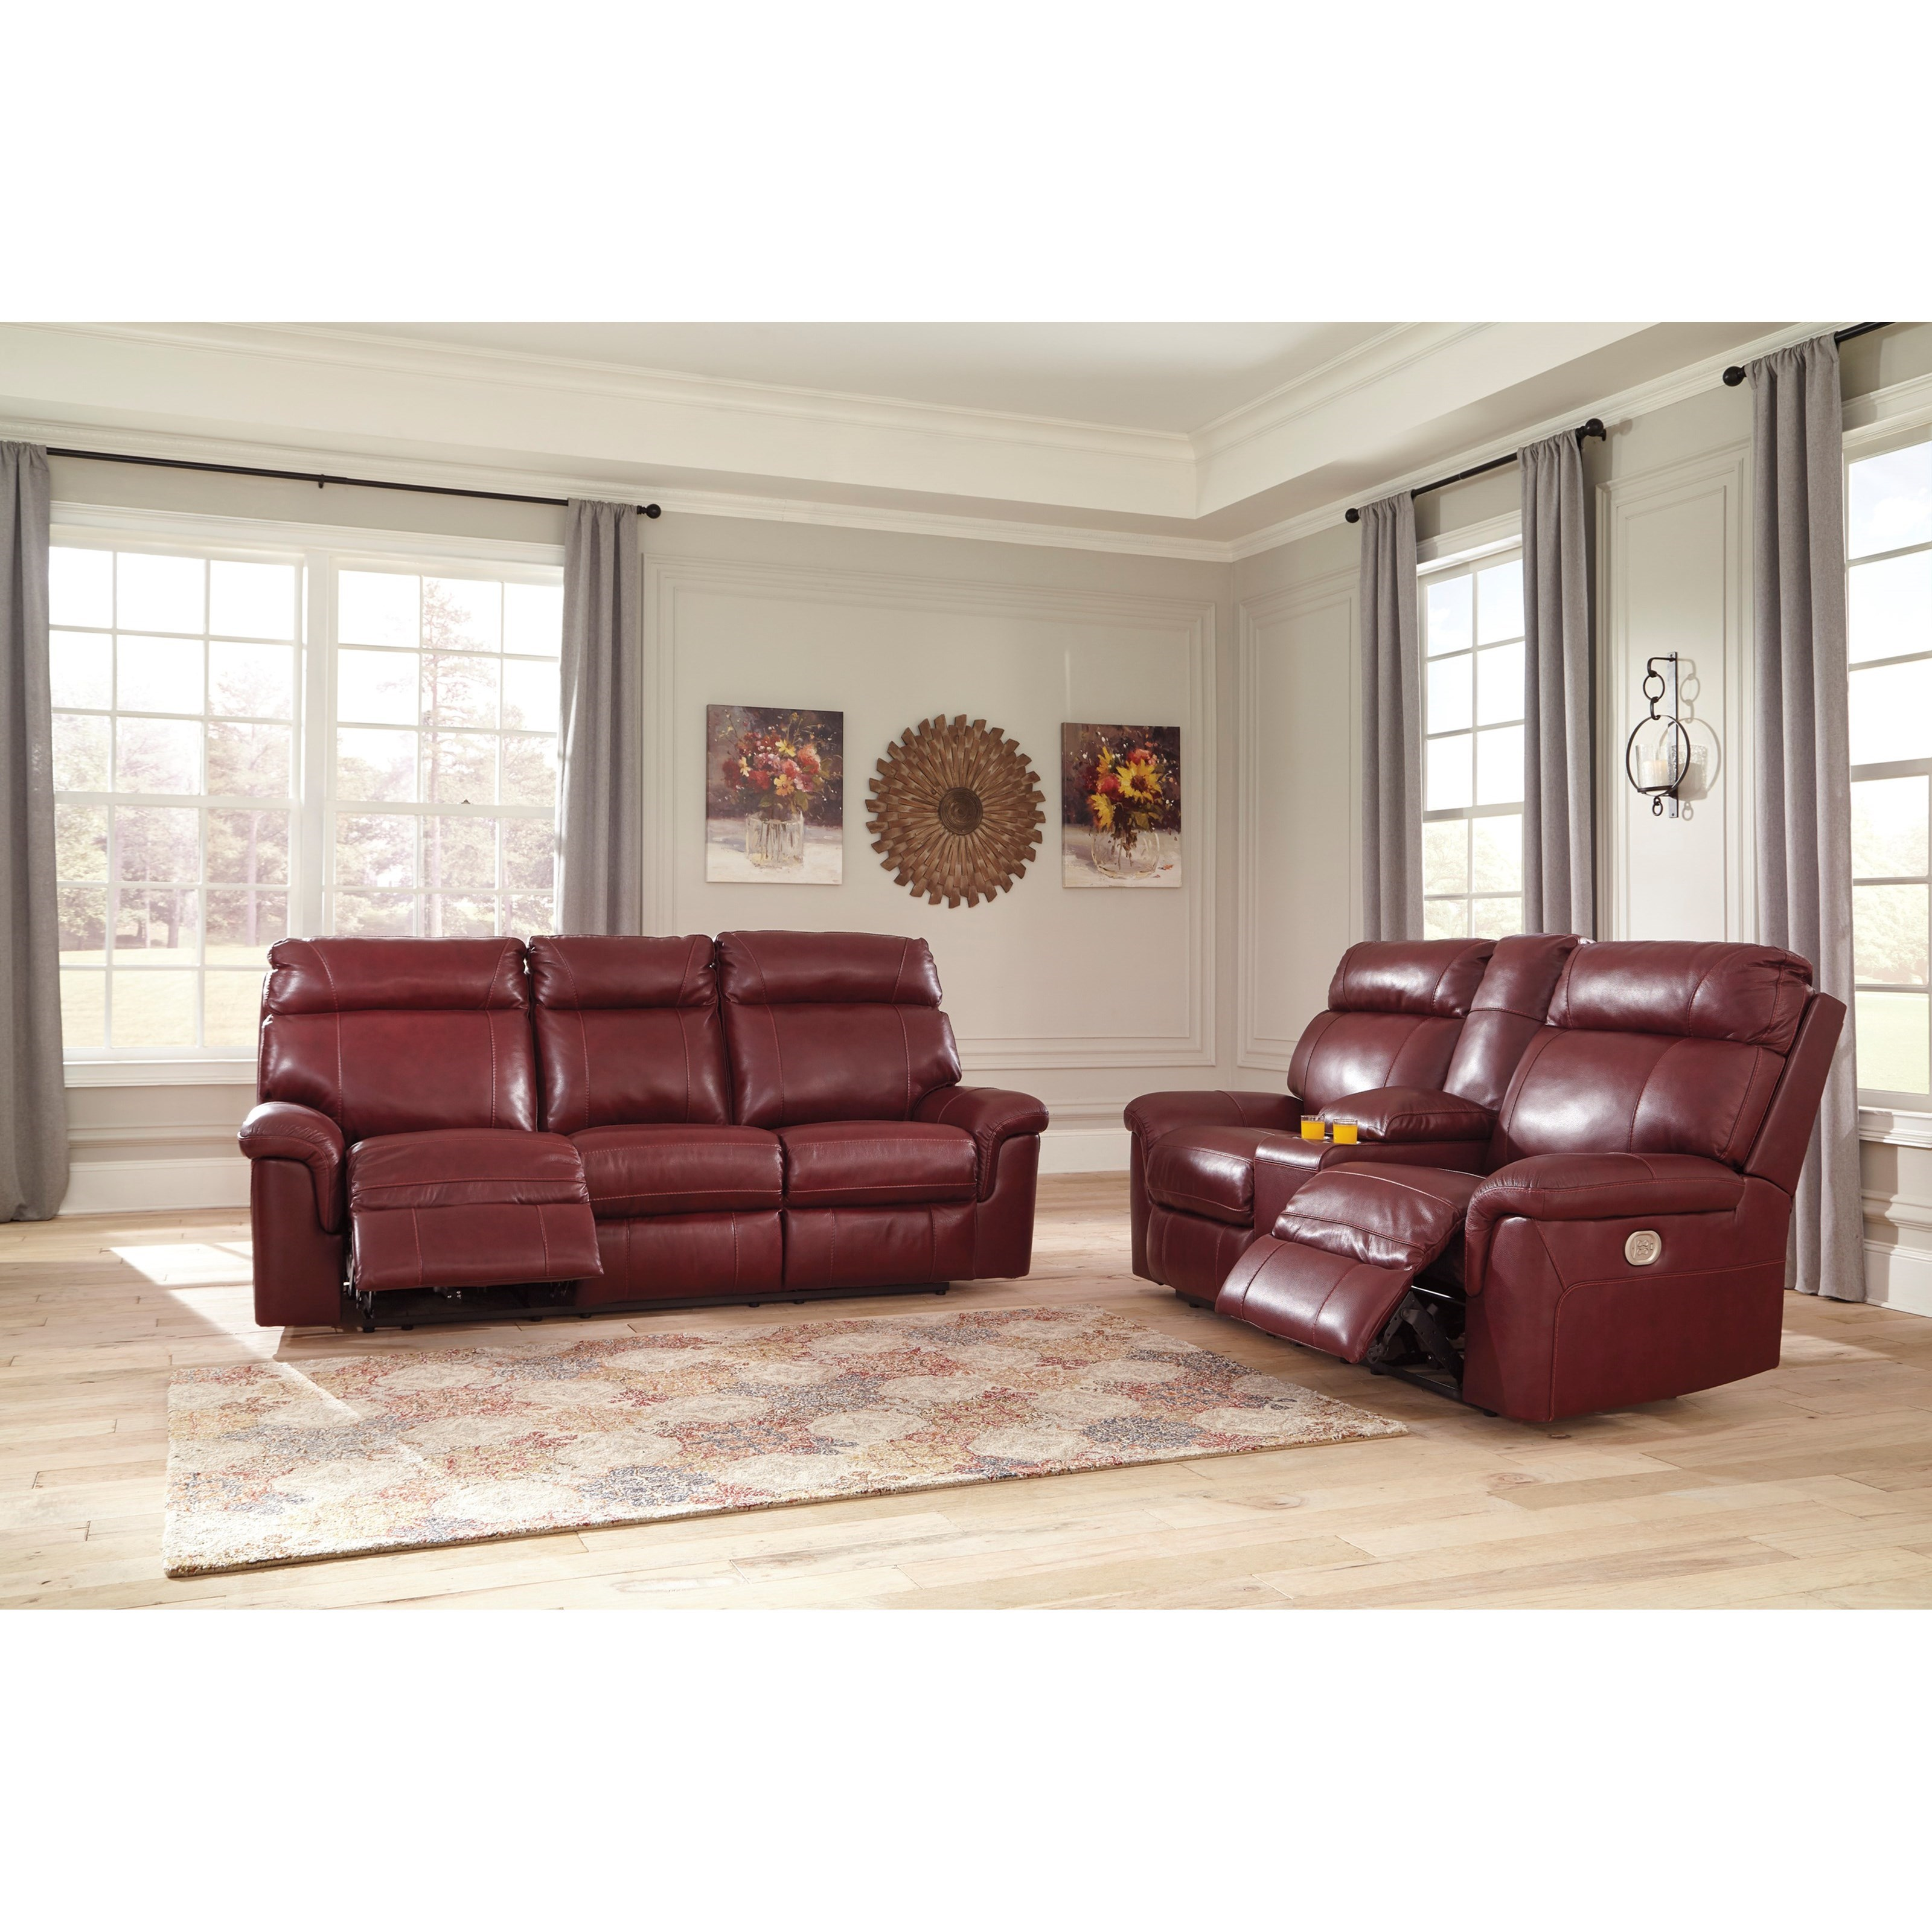 Signature Design by Ashley Duvic Reclining Living Room Group - Item Number: 56202 Living Room Group 1